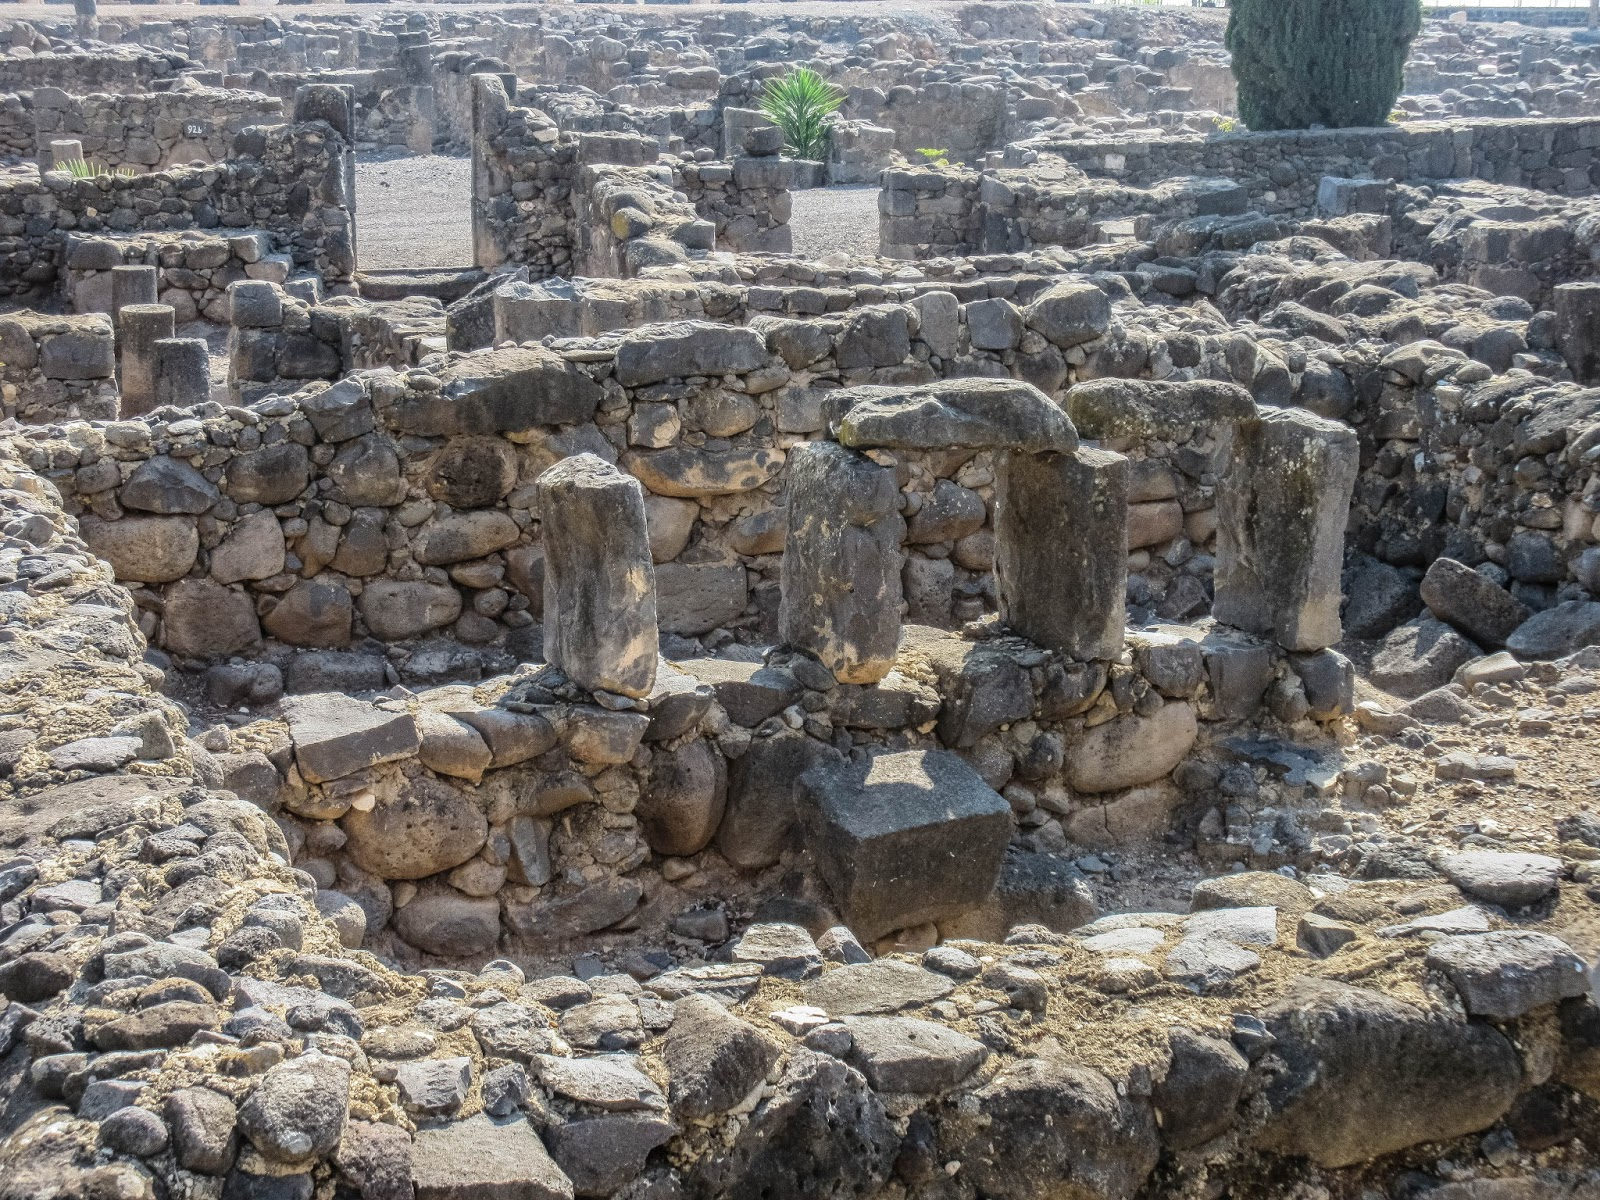 Cannundrums Capernaum Synagogue And House Of Peter